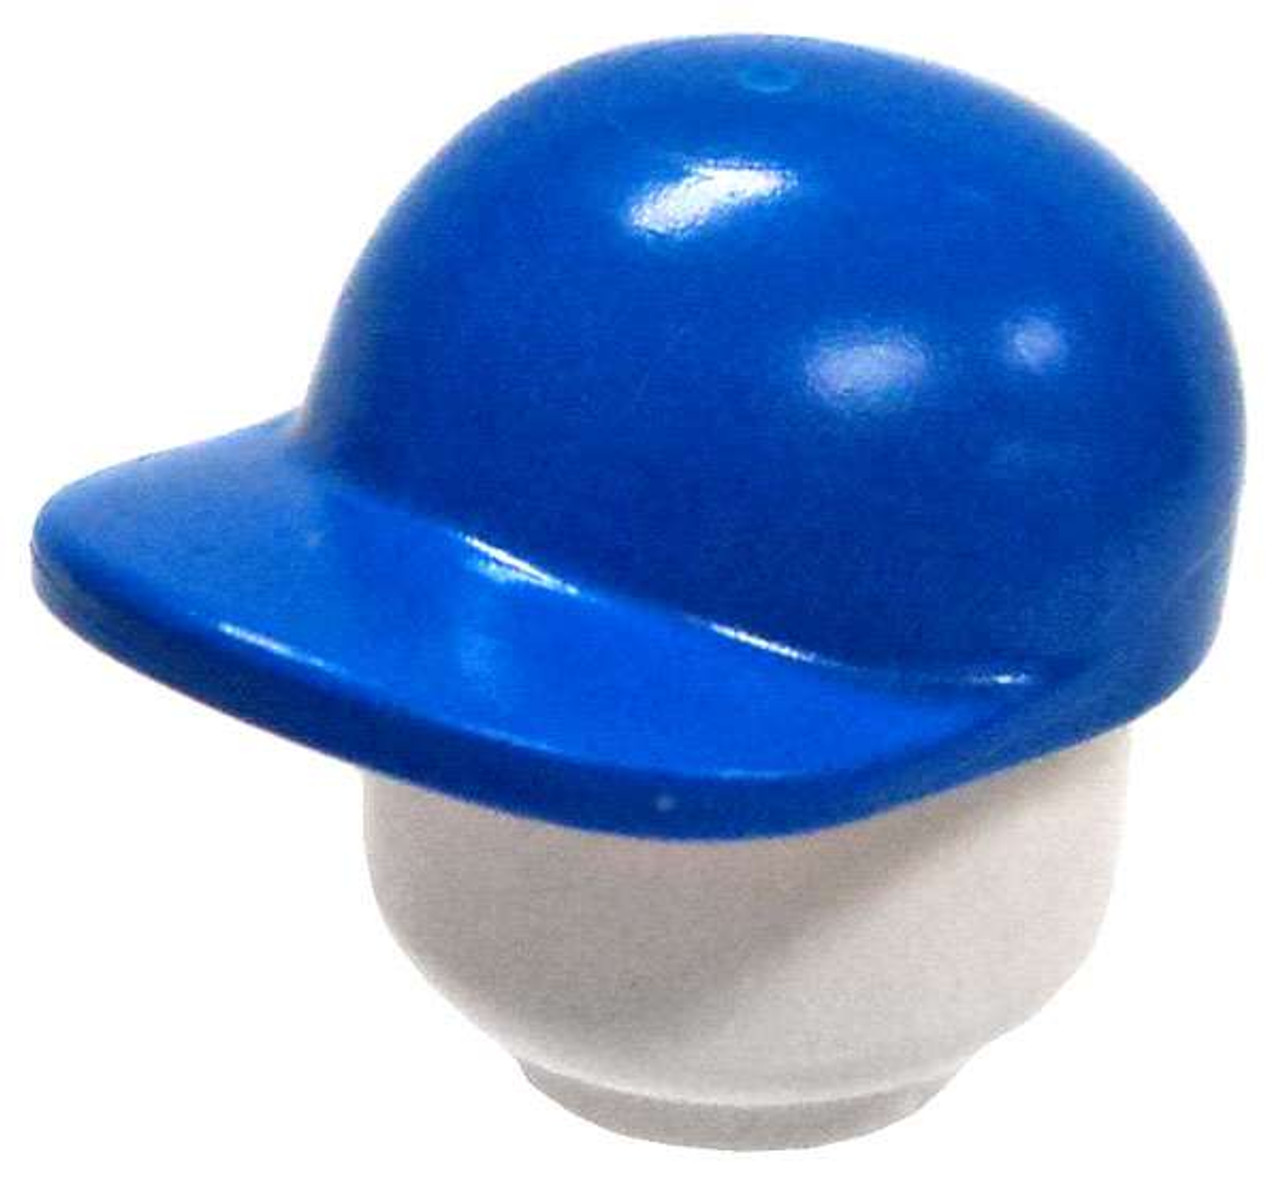 20222365741 LEGO LEGO Minifigure Parts Blue Curved Baseball Cap Loose - ToyWiz